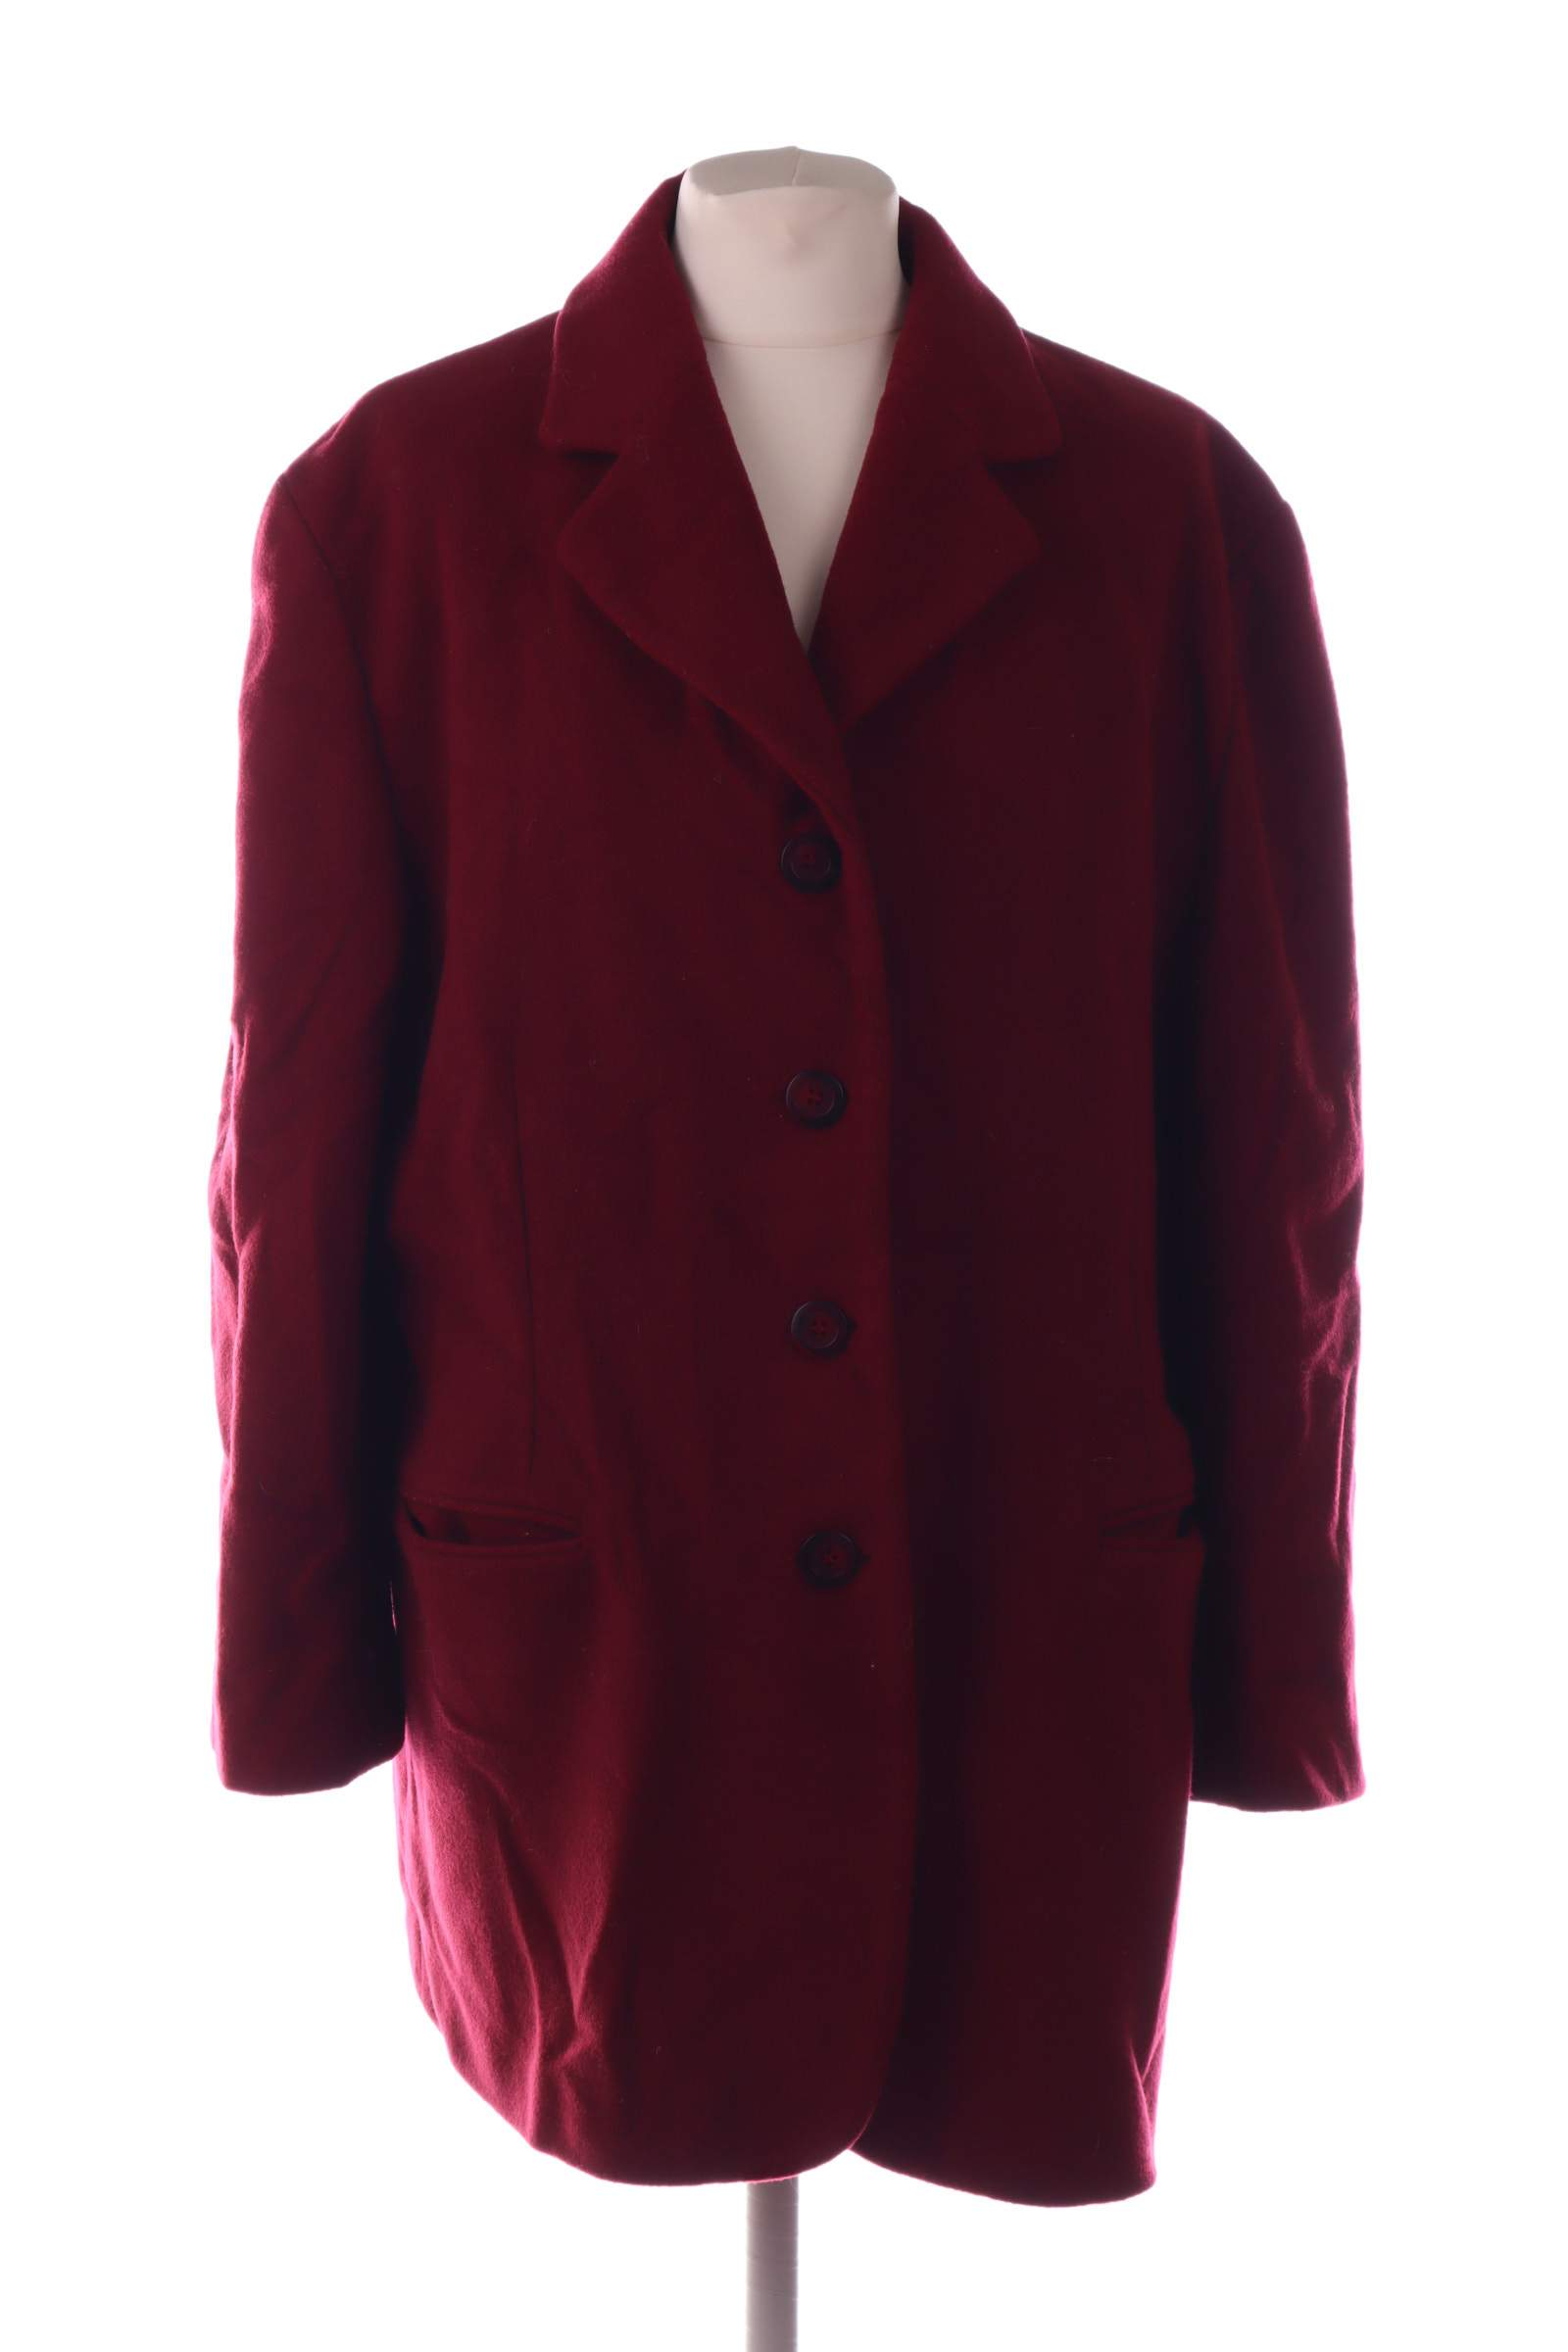 Only Burgundy Coat - upty.store